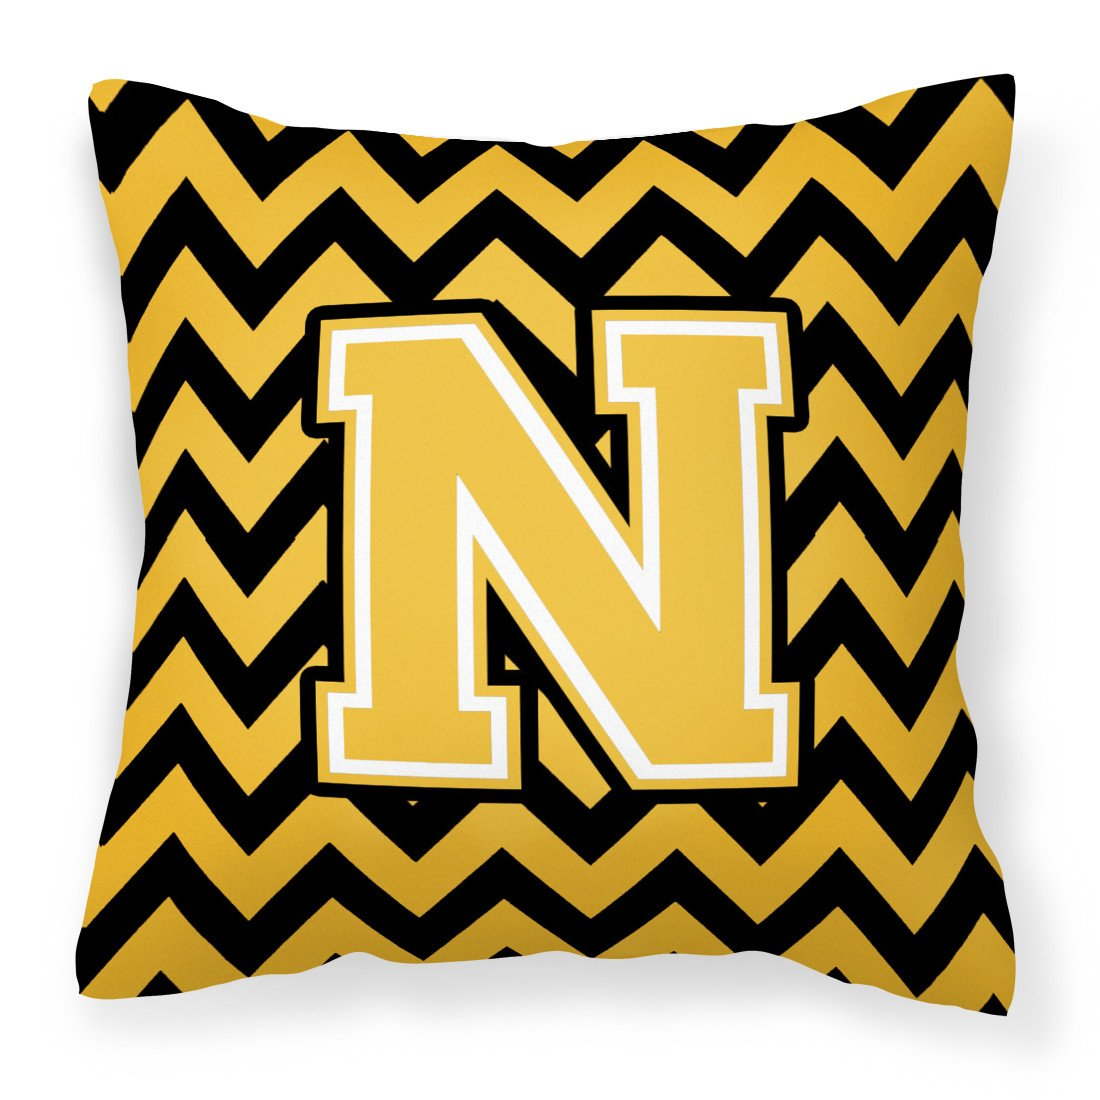 Letter N Chevron Black and Gold Fabric Decorative Pillow CJ1053-NPW1414 by Caroline's Treasures